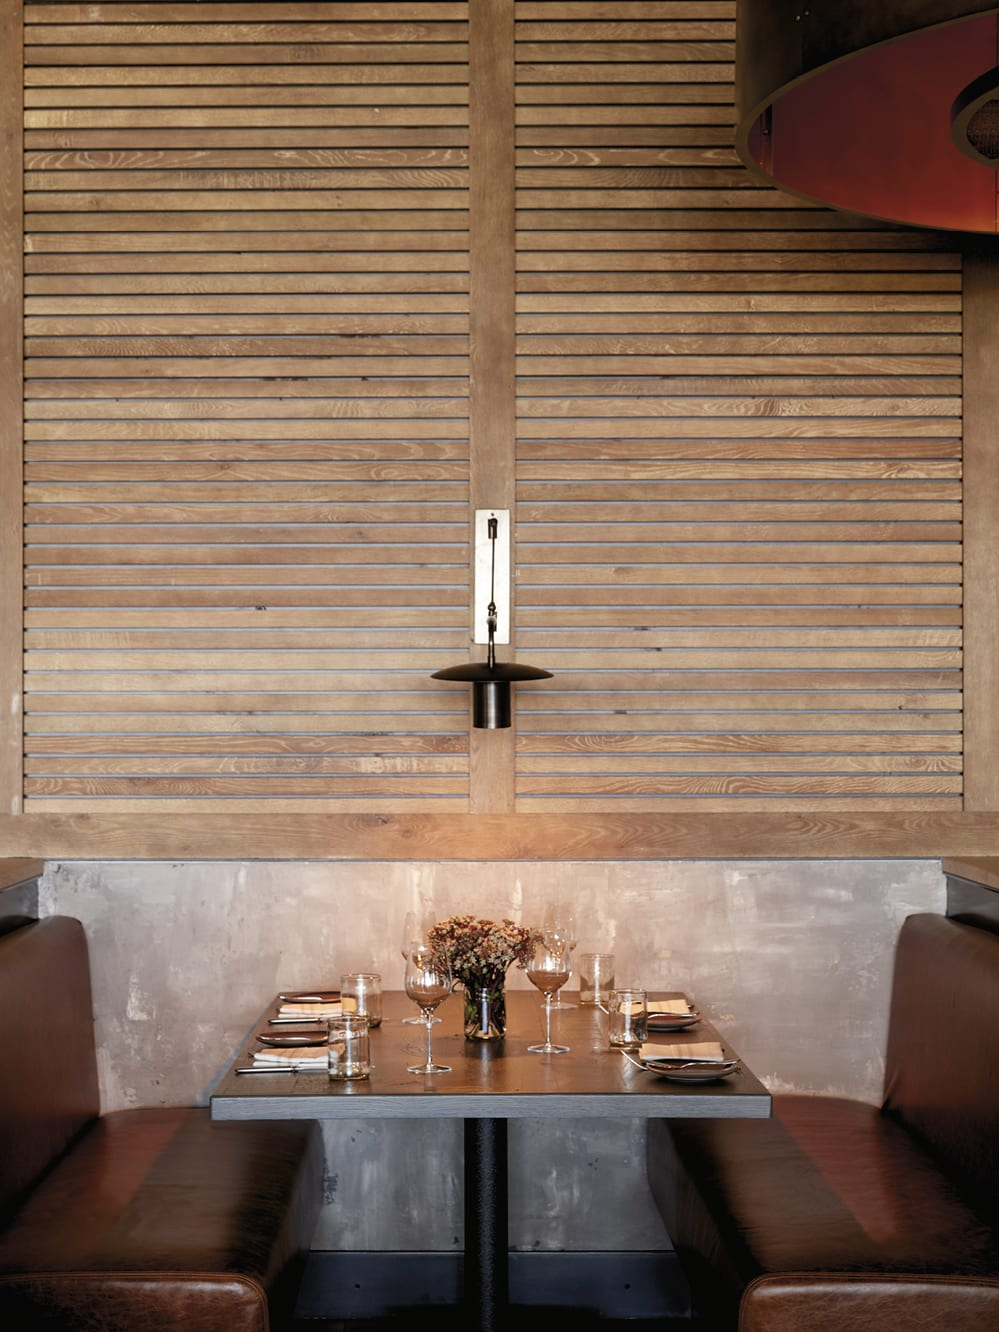 Restaurant table with a wooden slat wall